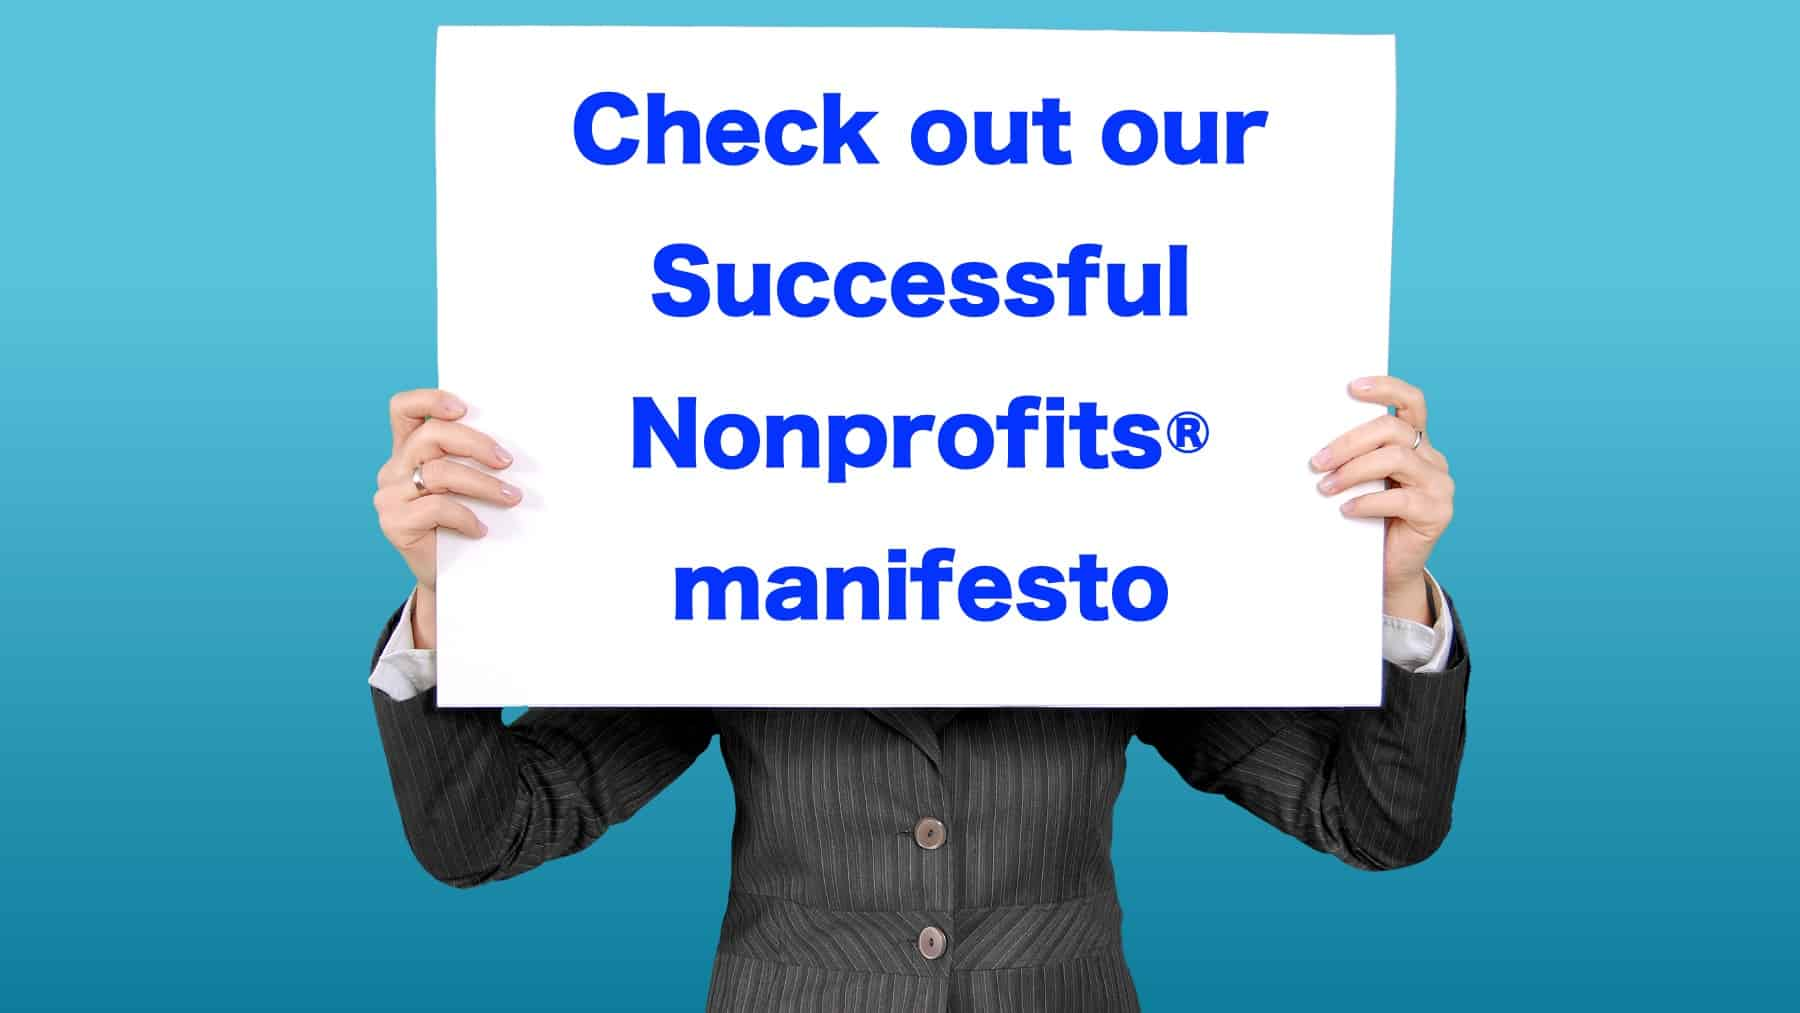 Successful Nonprofits